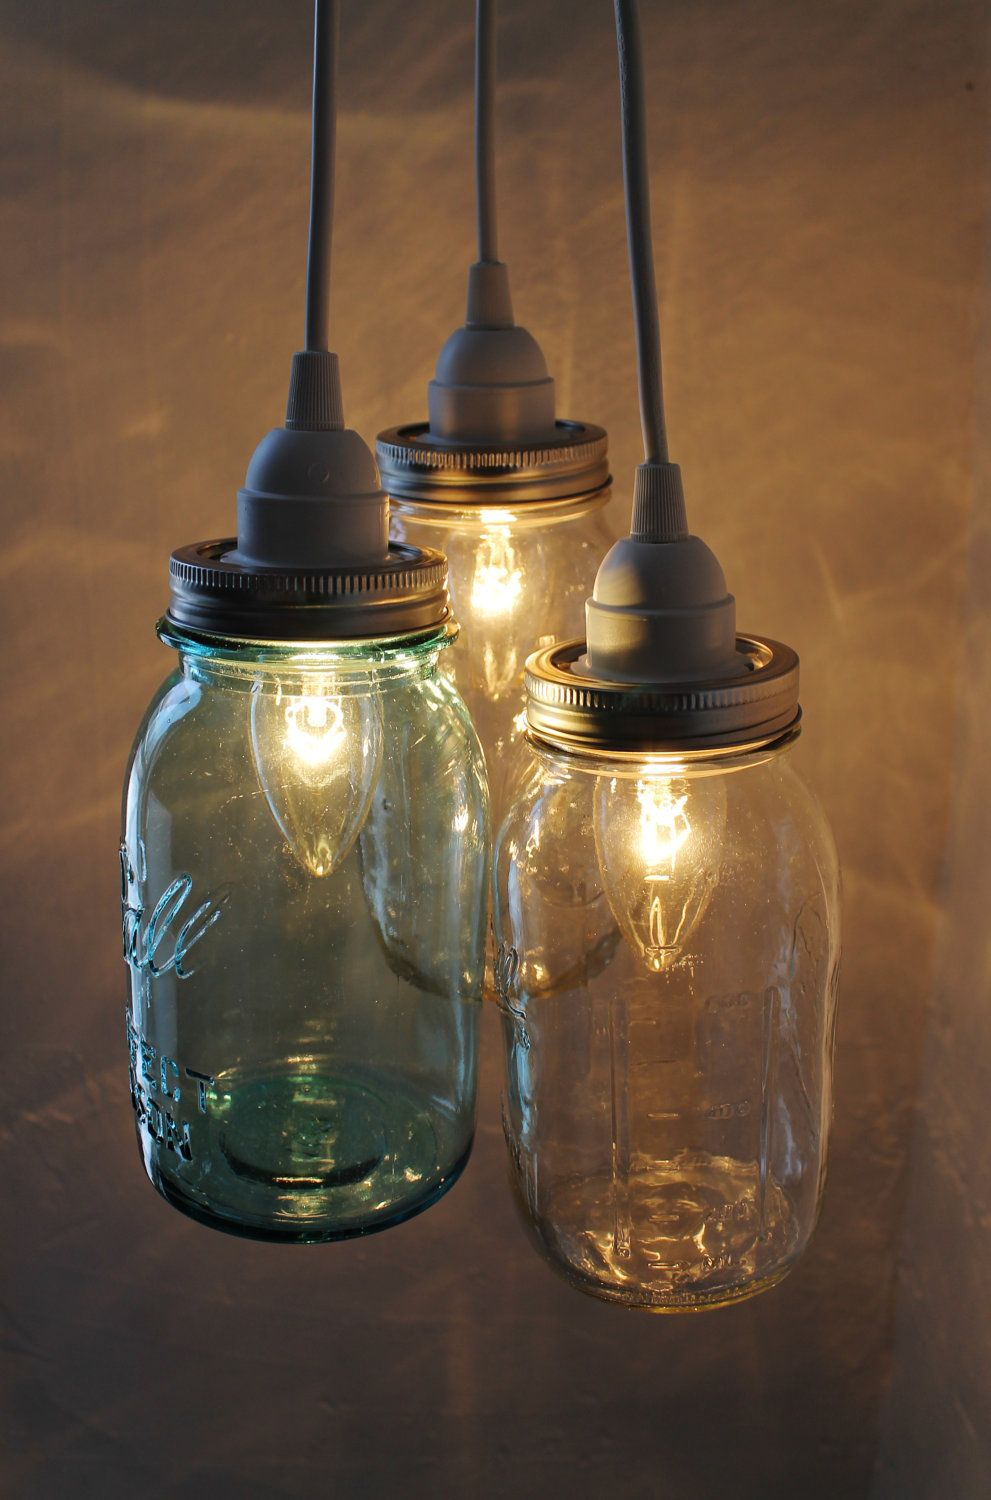 Summer beach house mason jar chandelier 3 ball mason jar hanging summer beach house mason jar chandelier 3 ball mason jar hanging pendant chandelier cluster light upcycled bootsngus lighting fixture on etsy arubaitofo Images